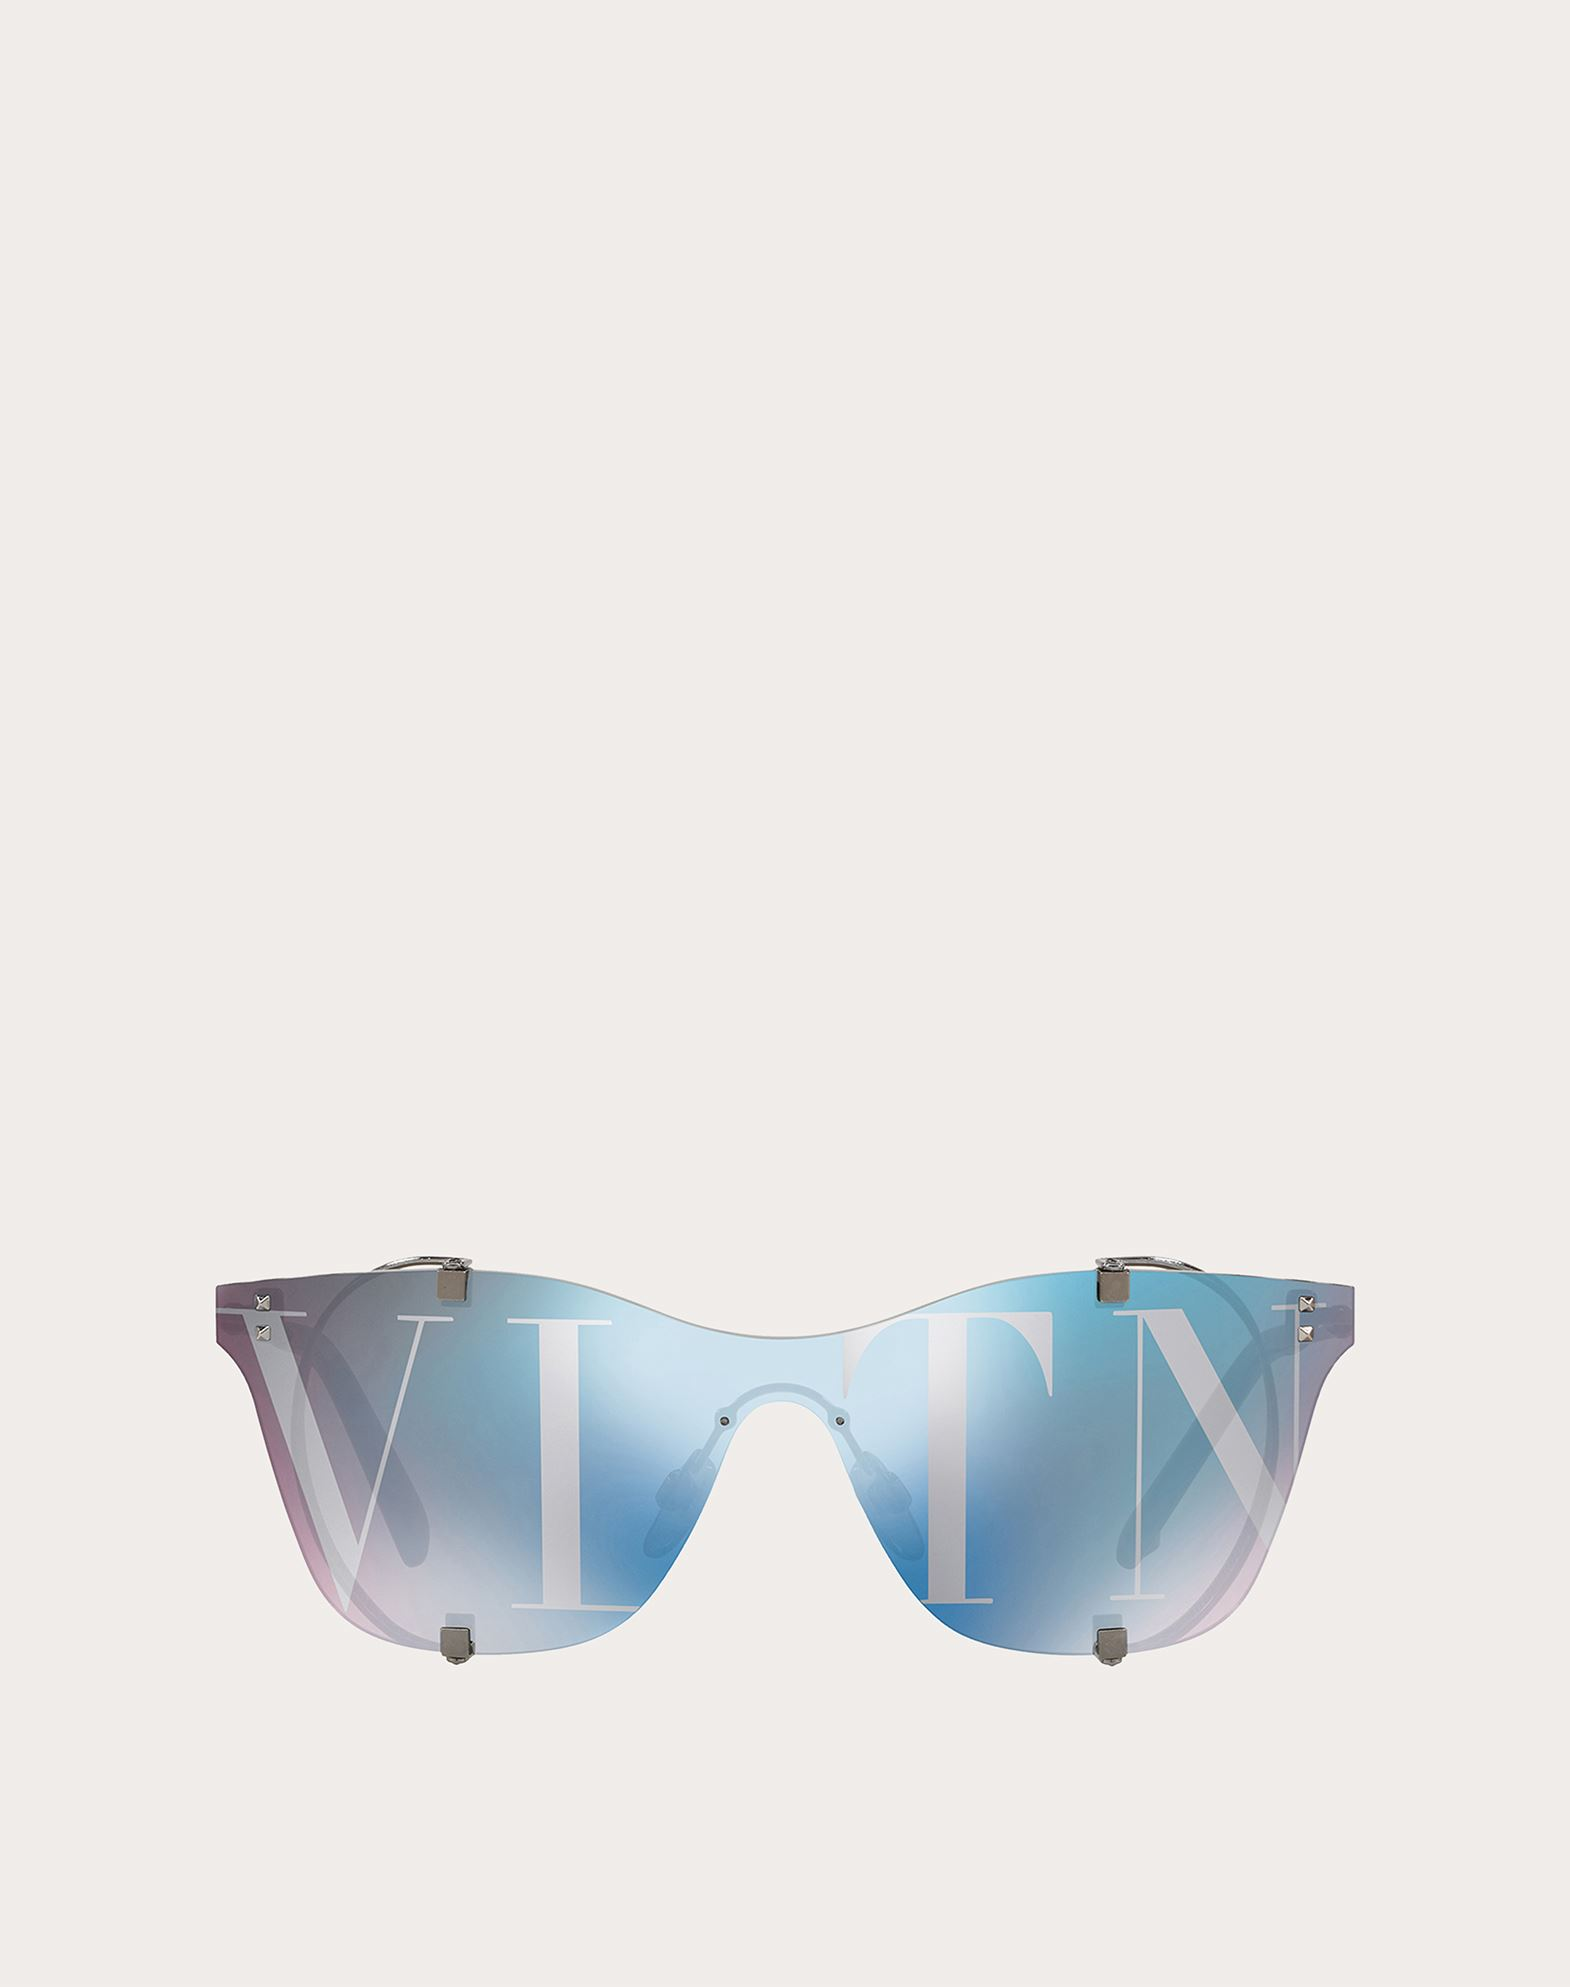 VLTN  FRAMELESS MIRRORED SUNGLASSES